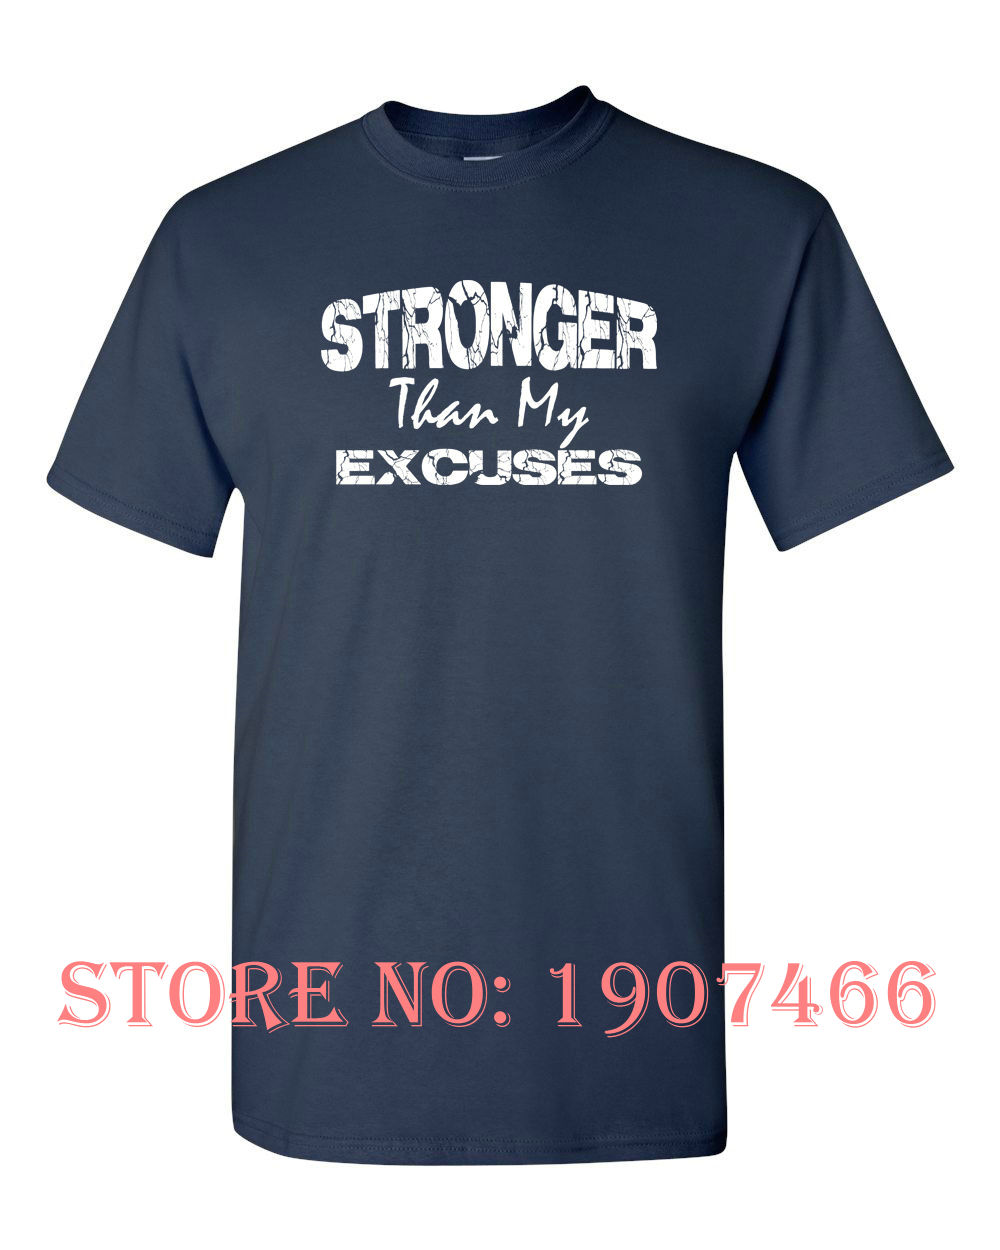 Black Fashion STRONGER Than My EXCUSES Workout Trainer Exercise Fitness MEN'S Tee Shirt 1074